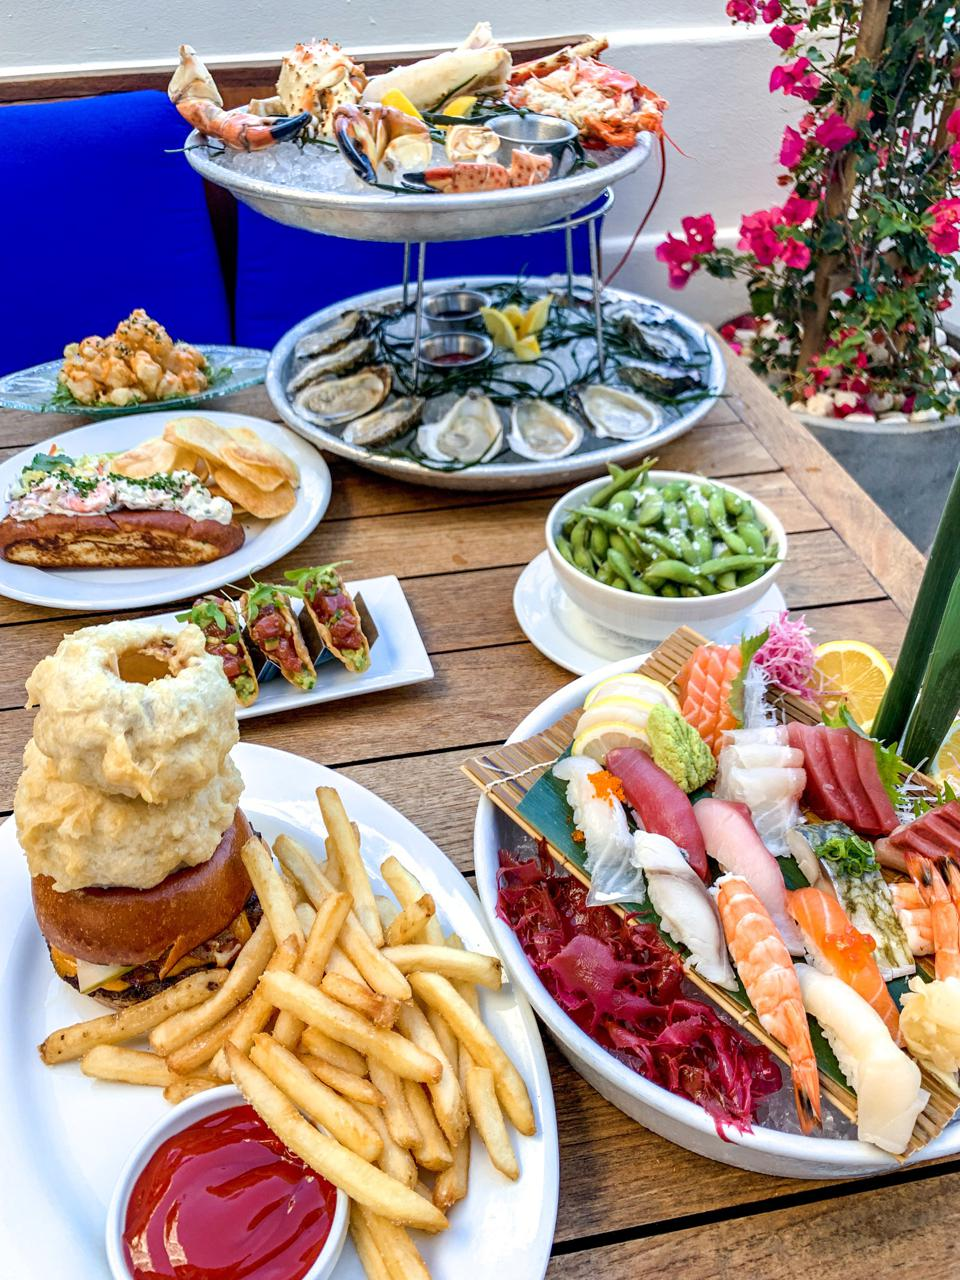 a spread of sushi and seafood